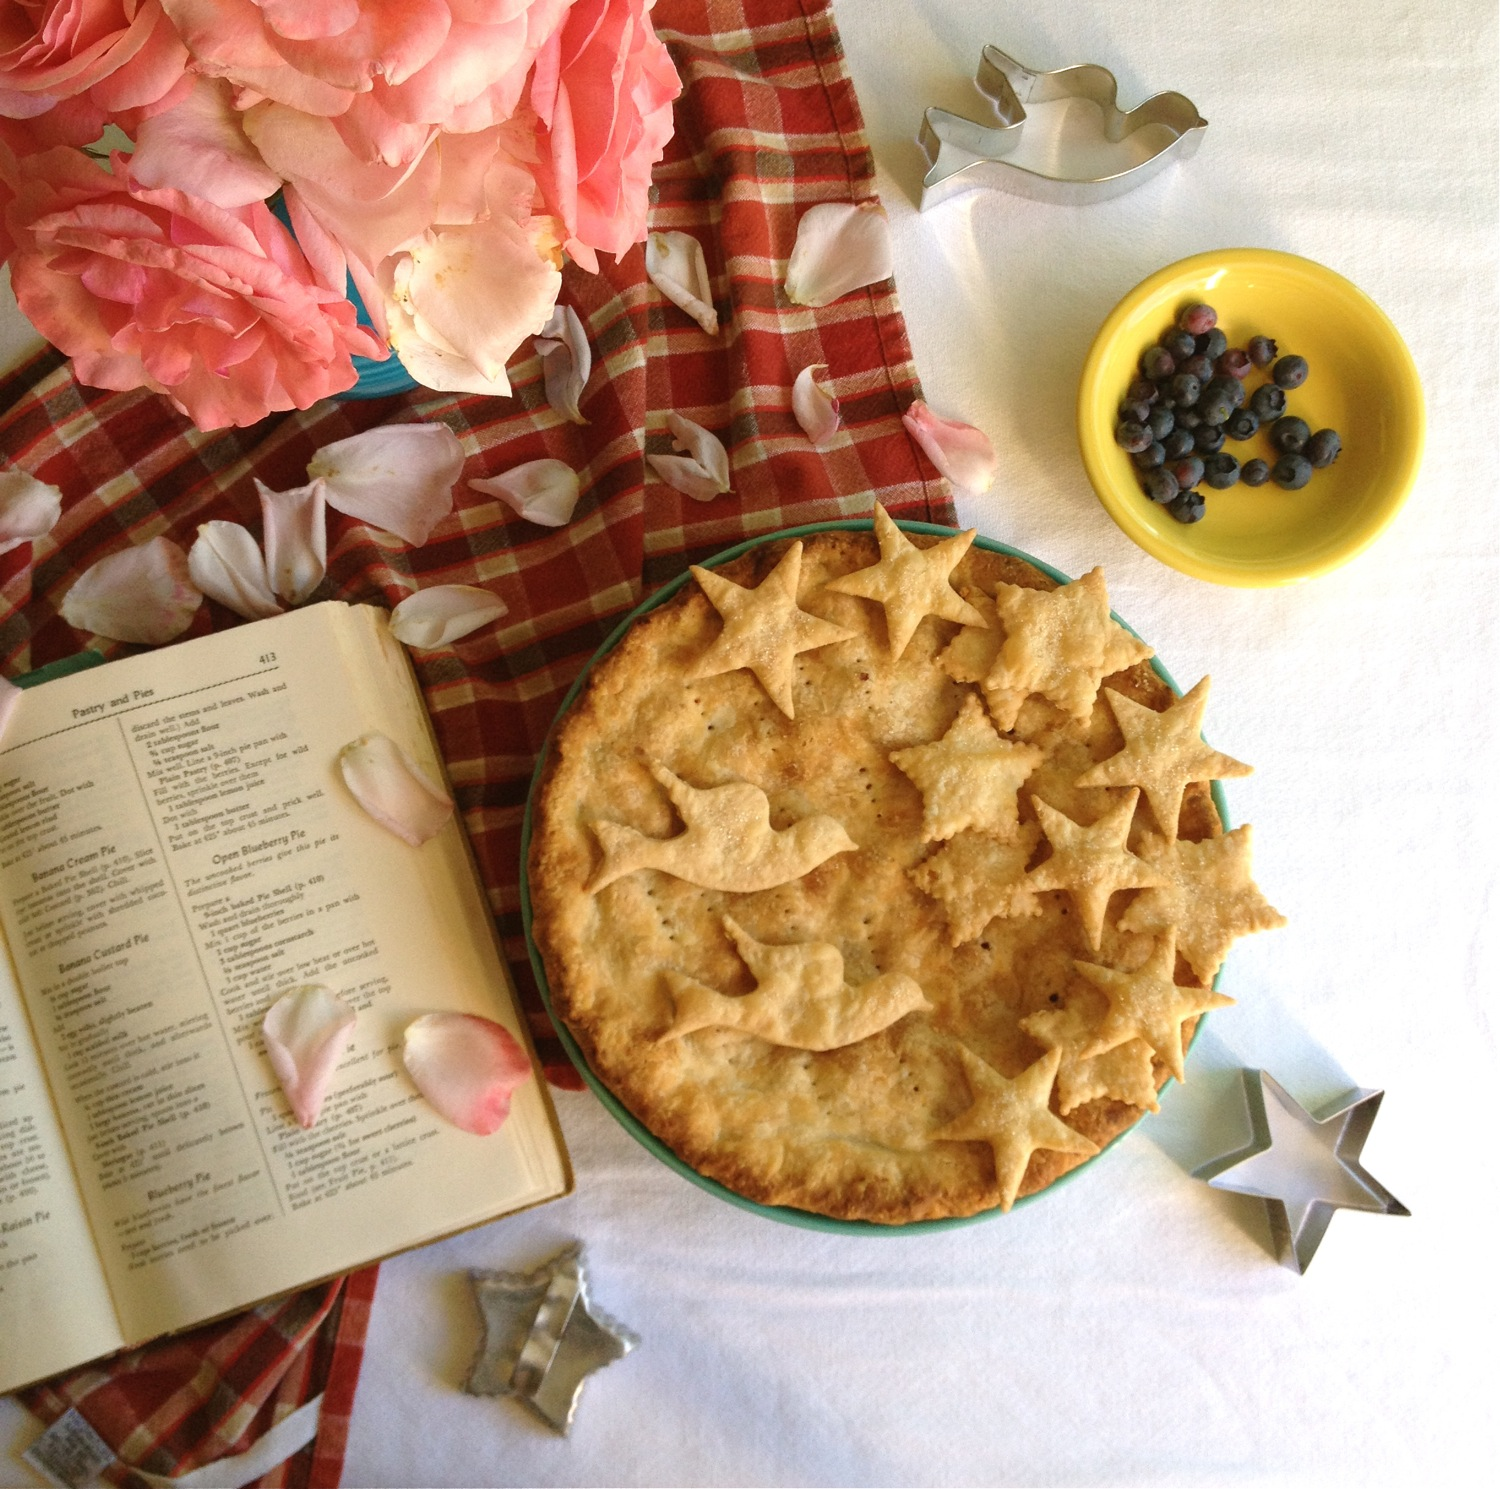 decorative pie crust, blueberry pie, blueberry pie recipe, Fanny Farmer cookbook, vintage Fanny Farmer cookbook, Fiestaware, roses and blueberry pie,